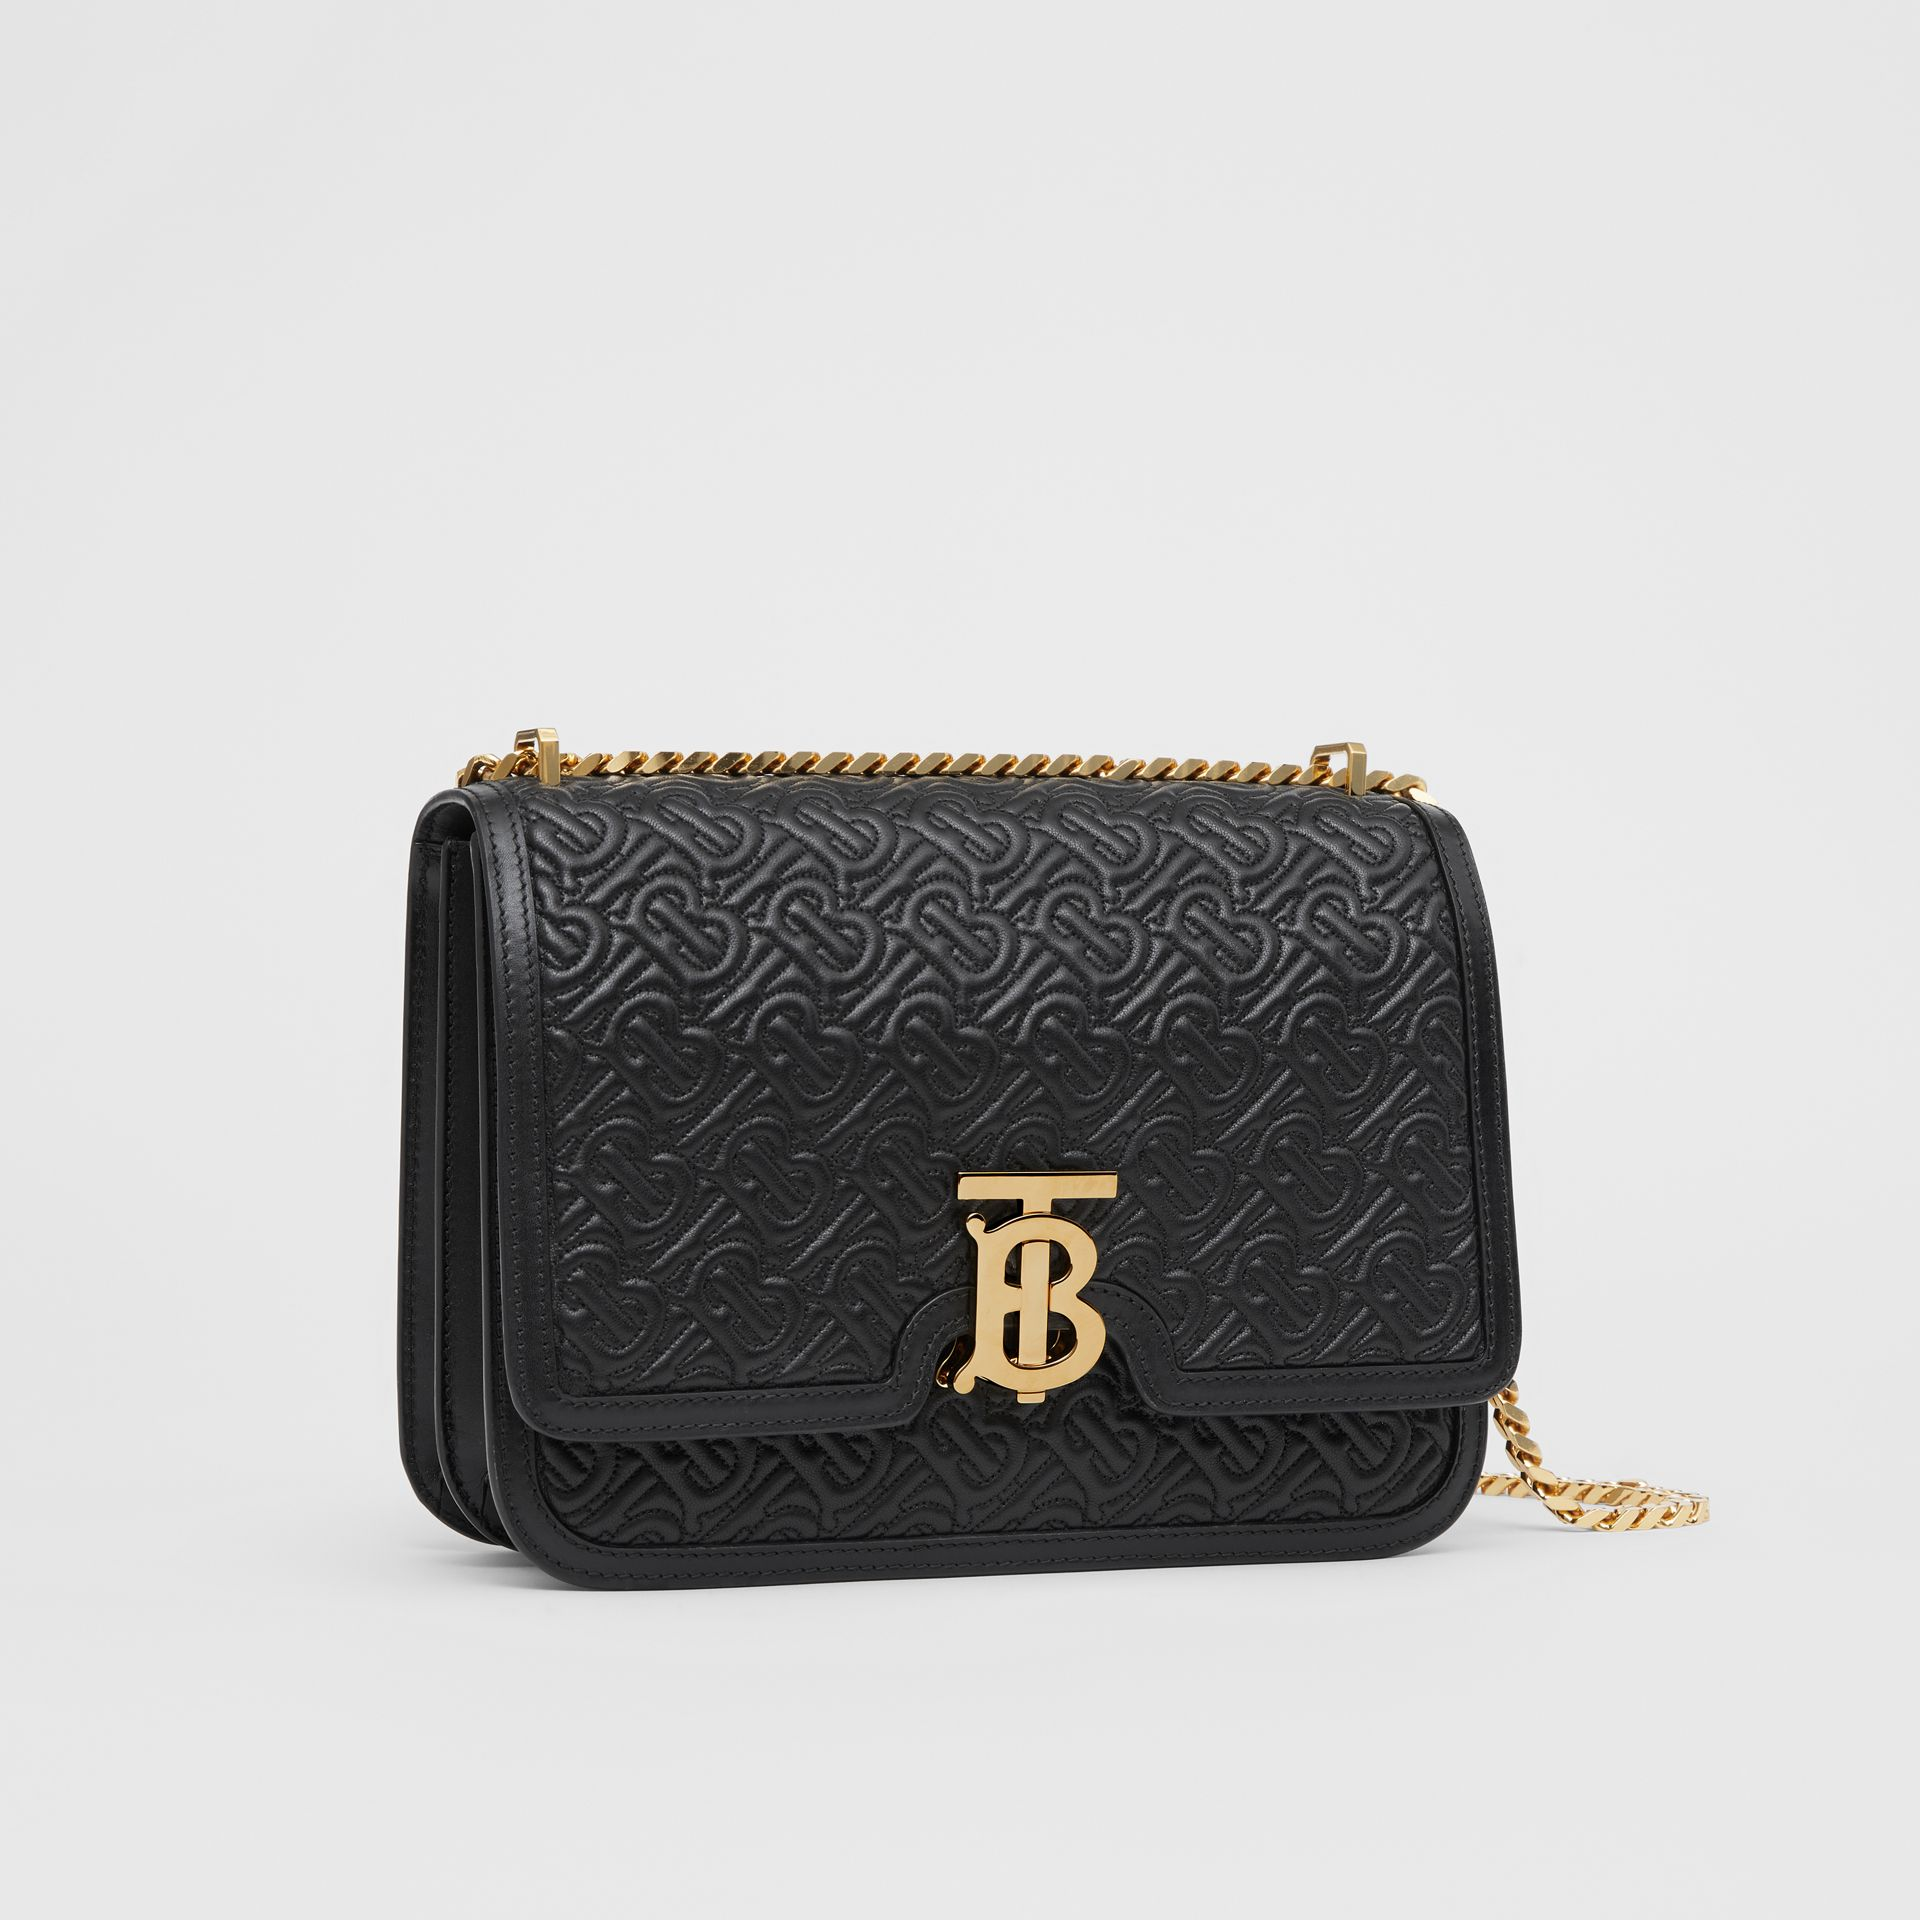 Medium Quilted Monogram Lambskin TB Bag in Black - Women | Burberry - gallery image 6